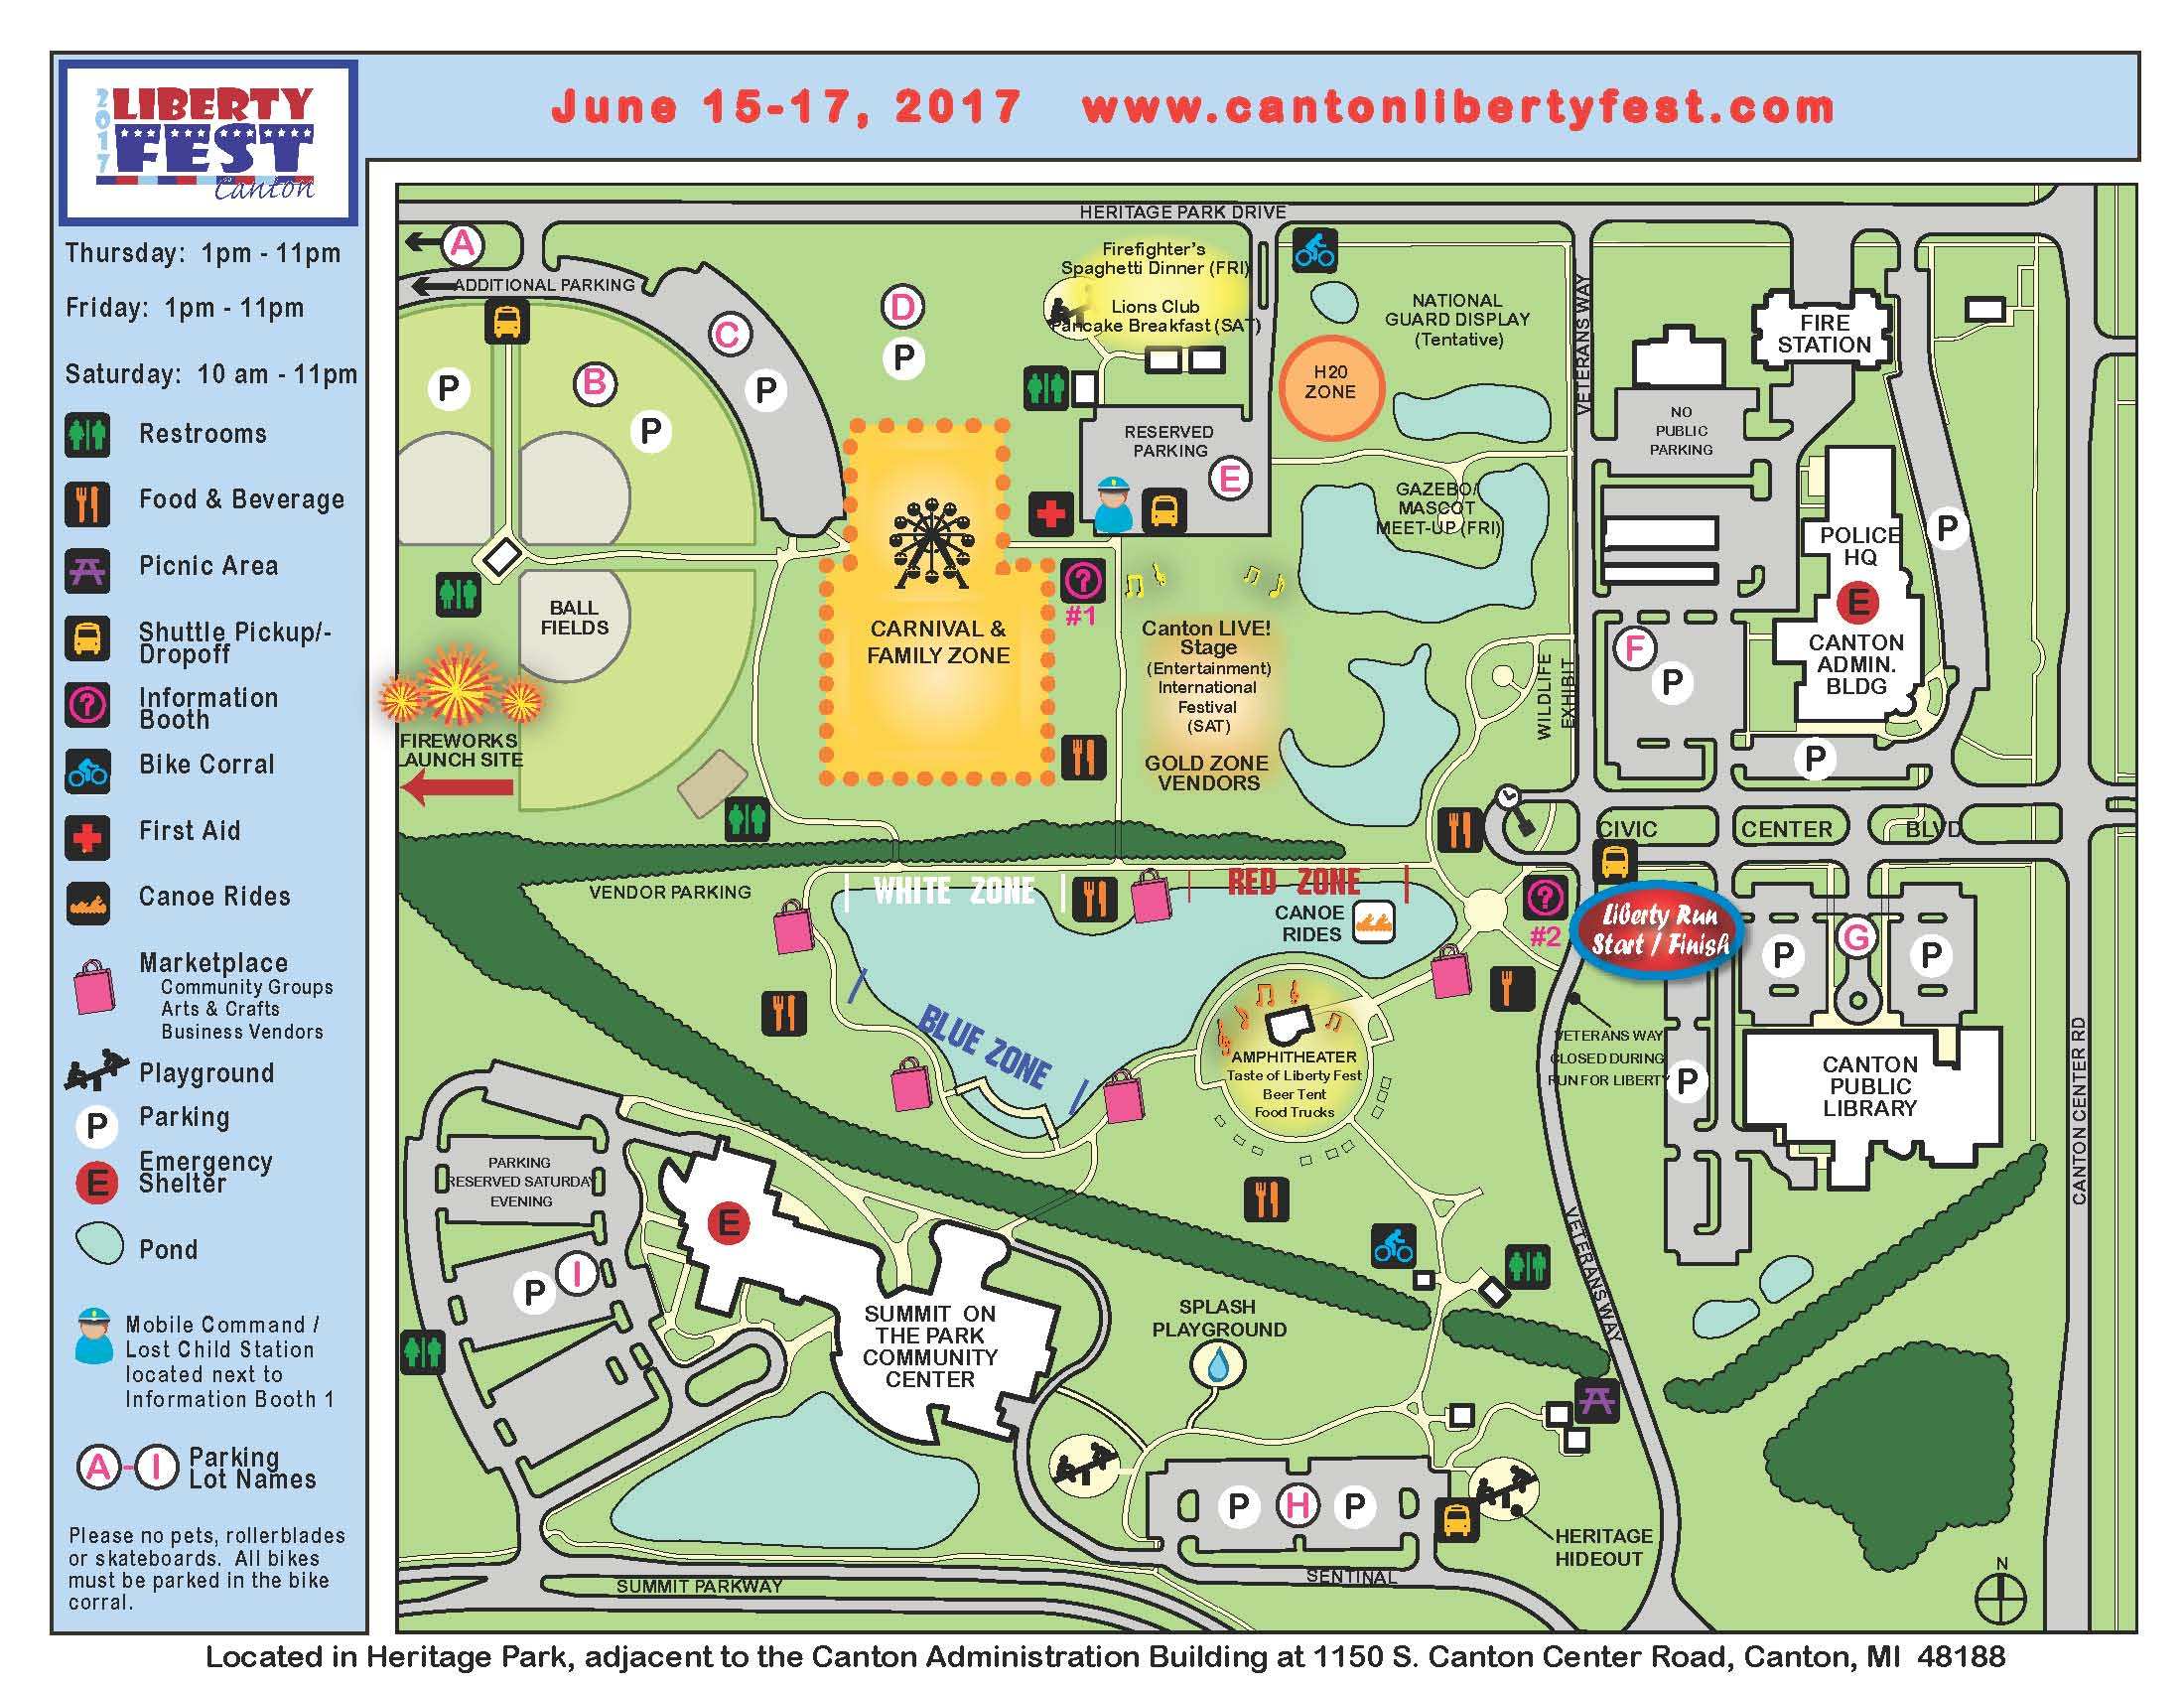 2017 Liberty Fest Grounds Map